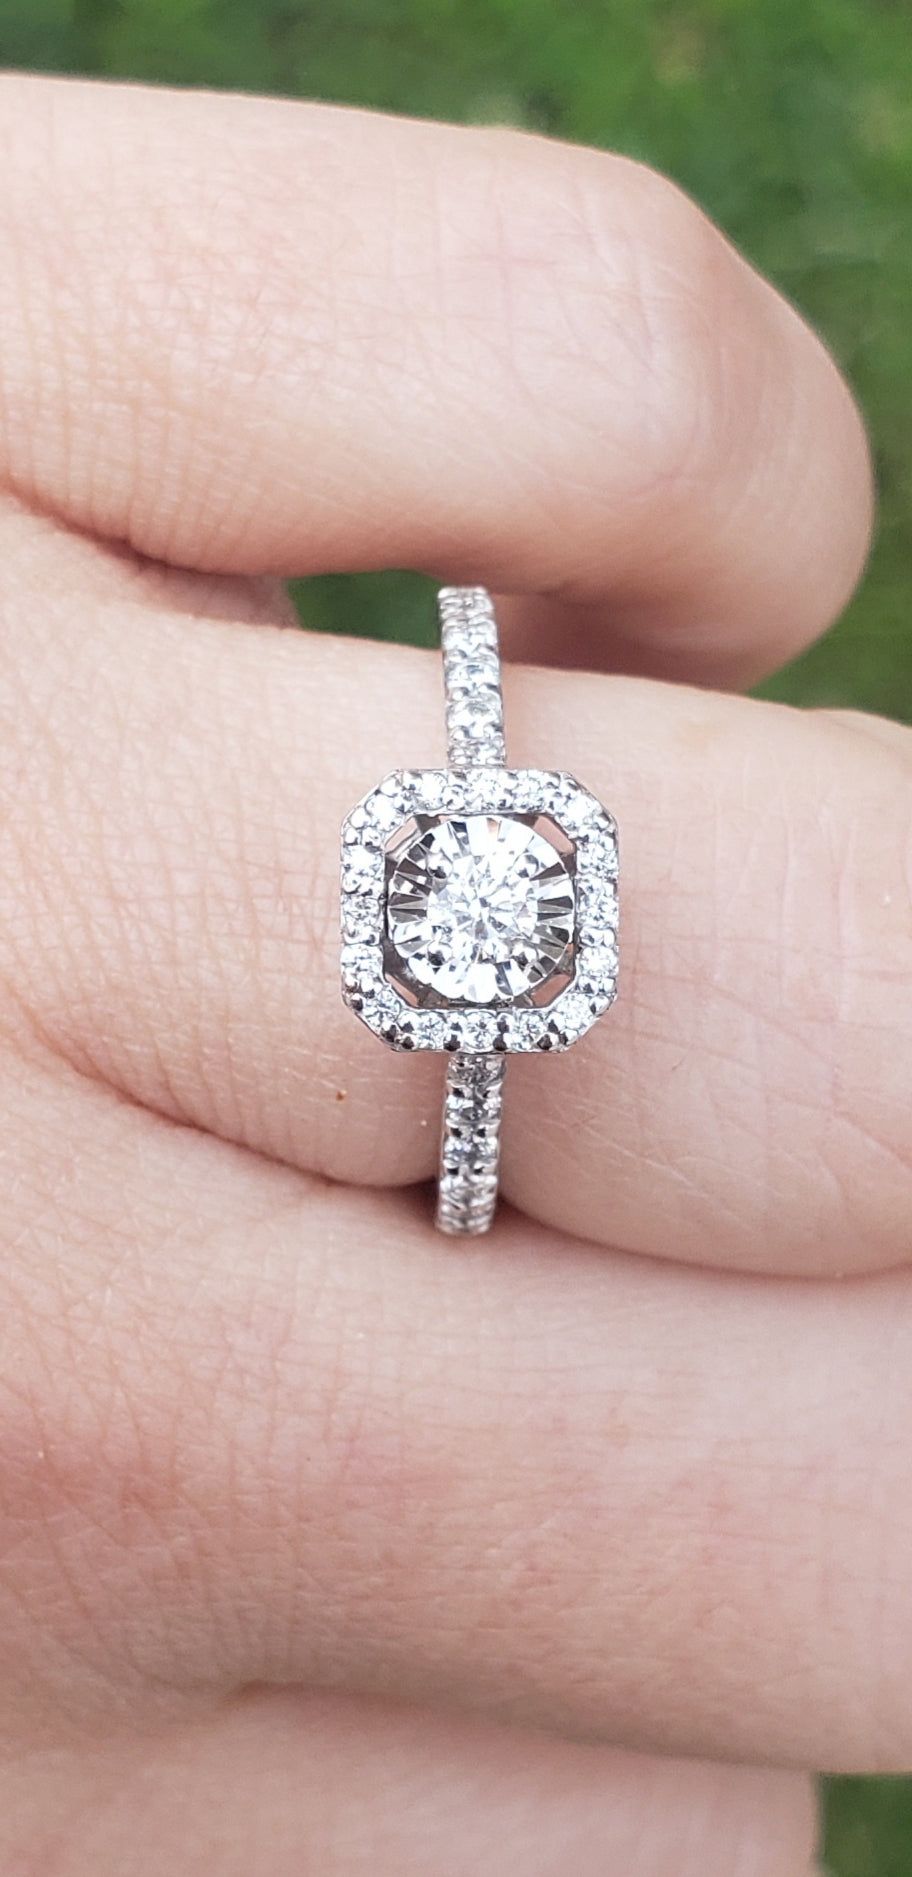 14K White Gold Diamond Engagement Ring with Diamond Halo